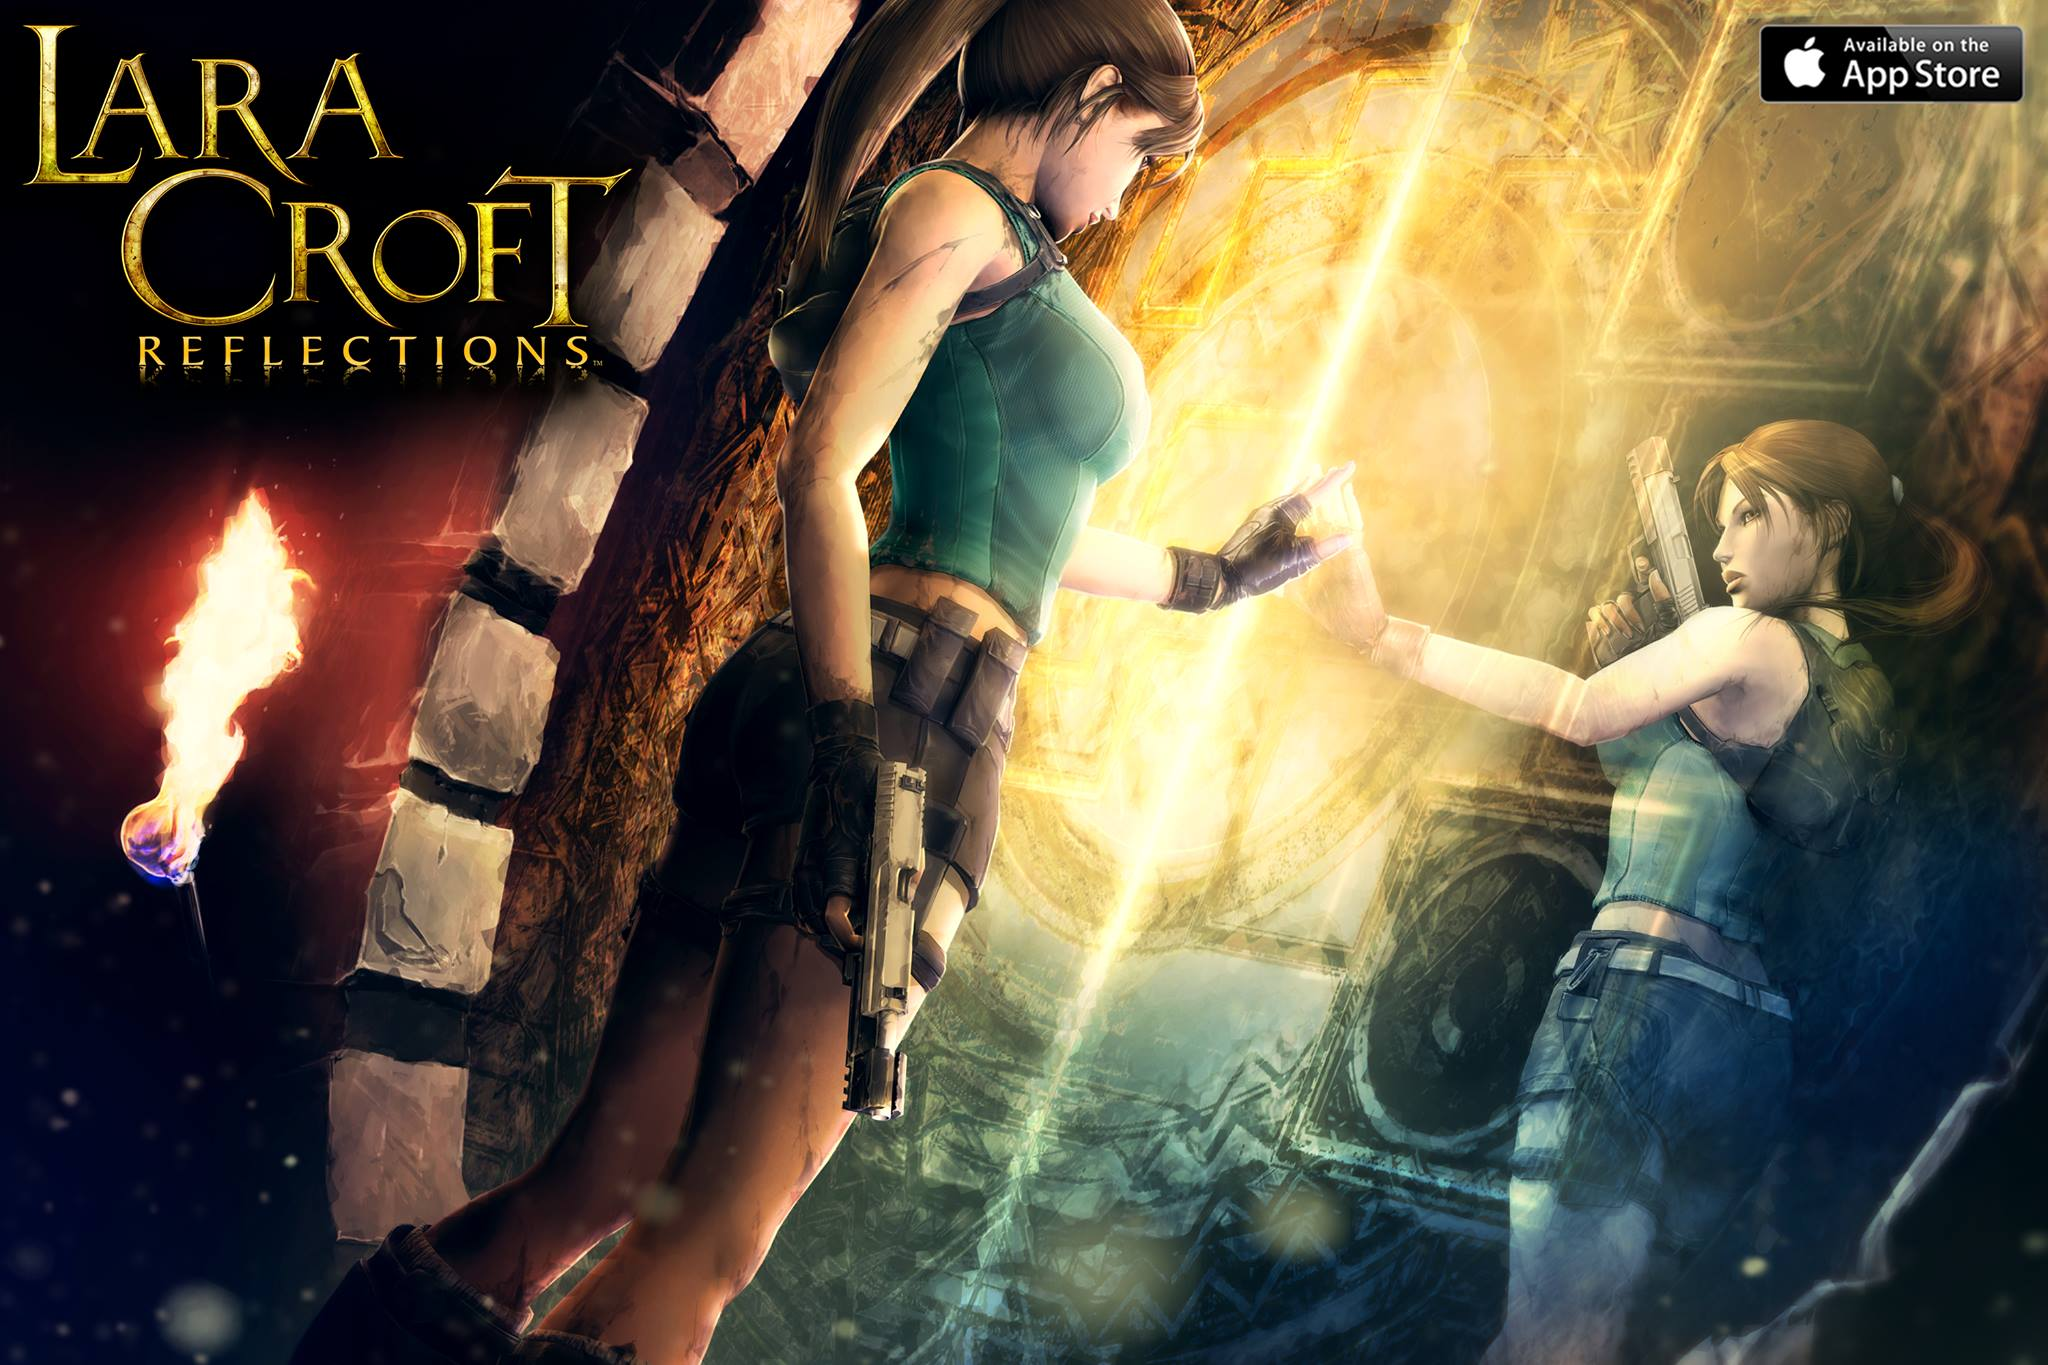 Tomb Raider Video Game Sequel Revealed at E3 [Video